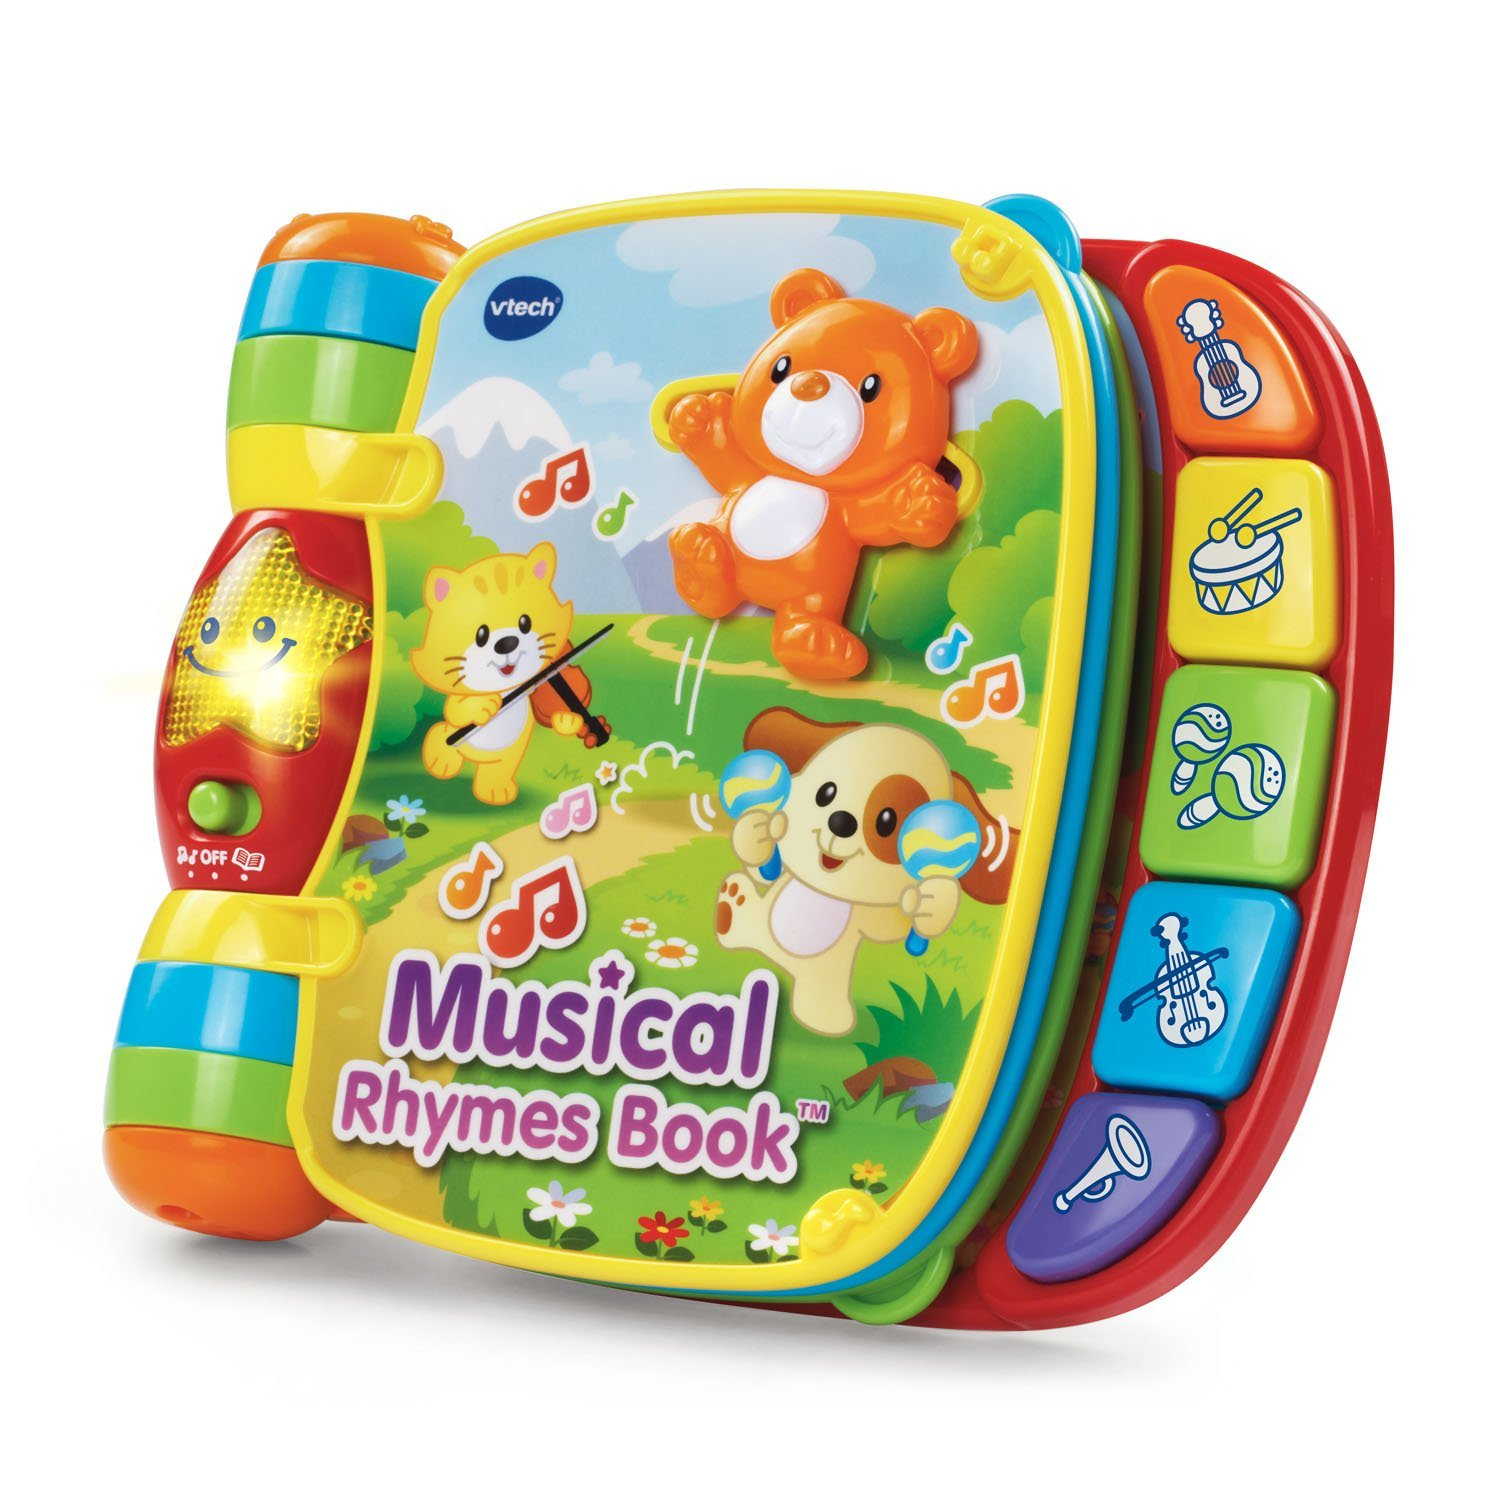 Musical Rhymes Book Interactive Kids Book Has Big Easy To Turn